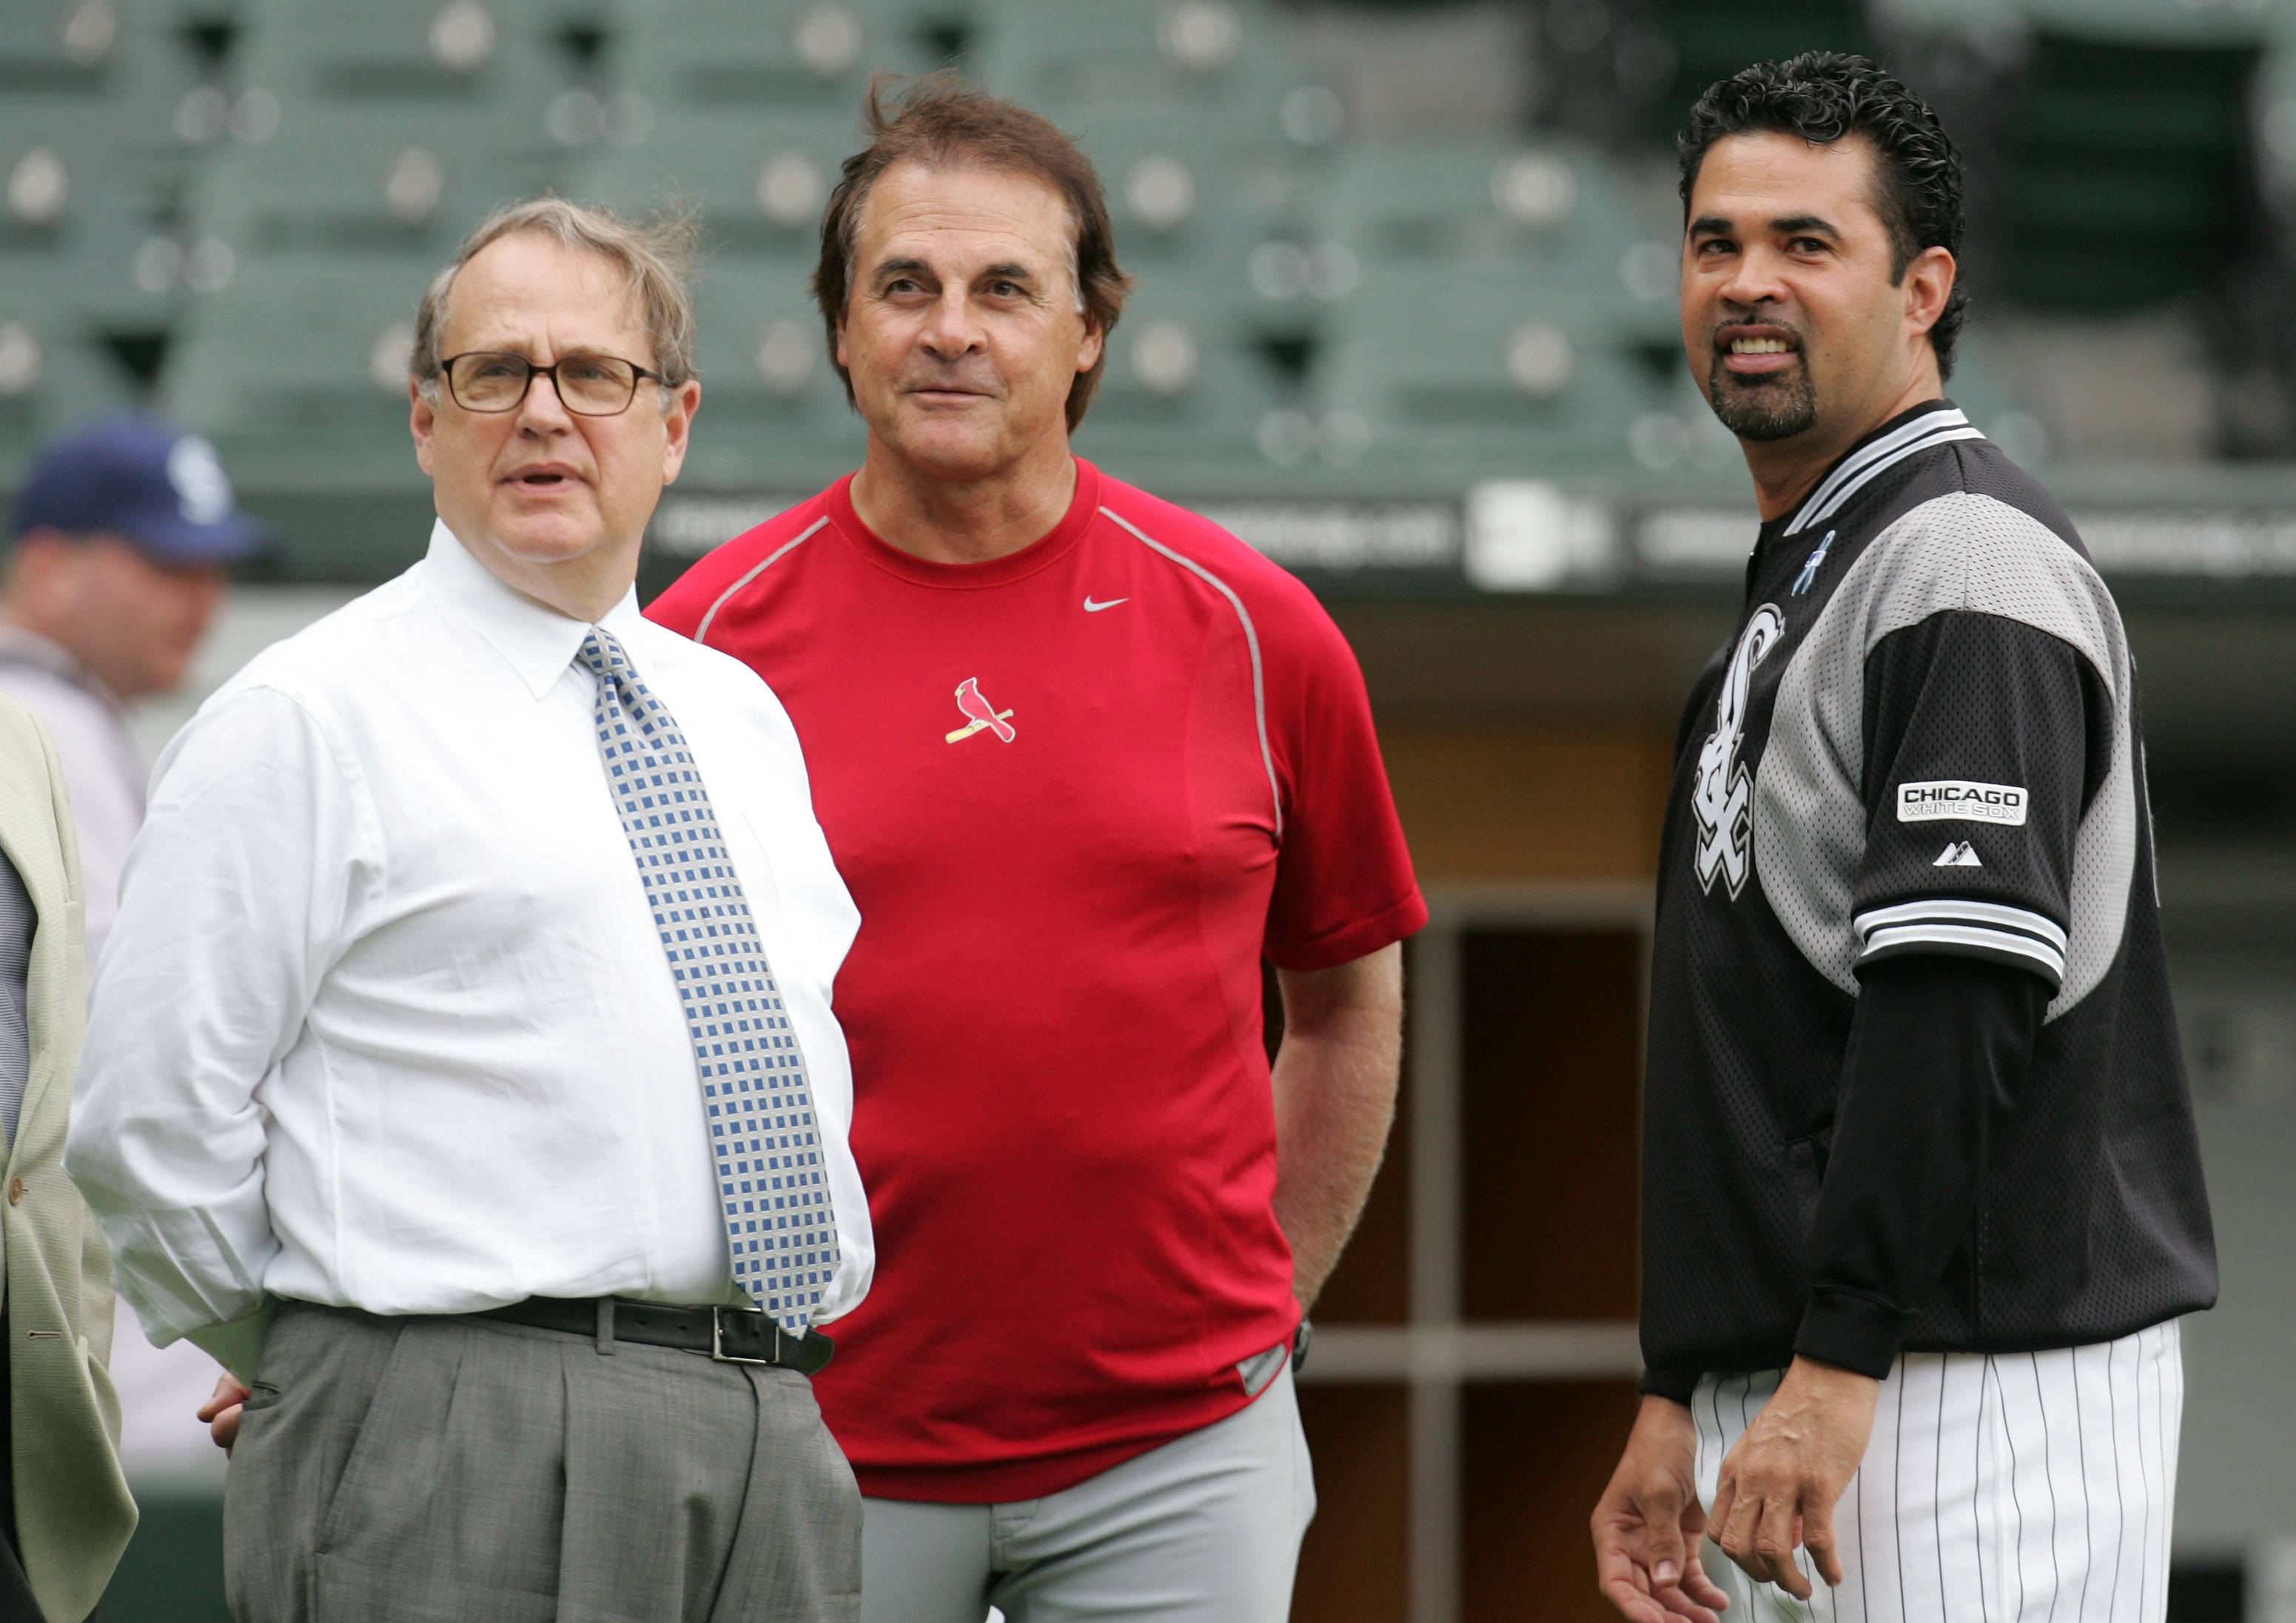 Jerry Reinsdorf, Tony La Russa and Ozzie Guillen visit before a game in 2006.